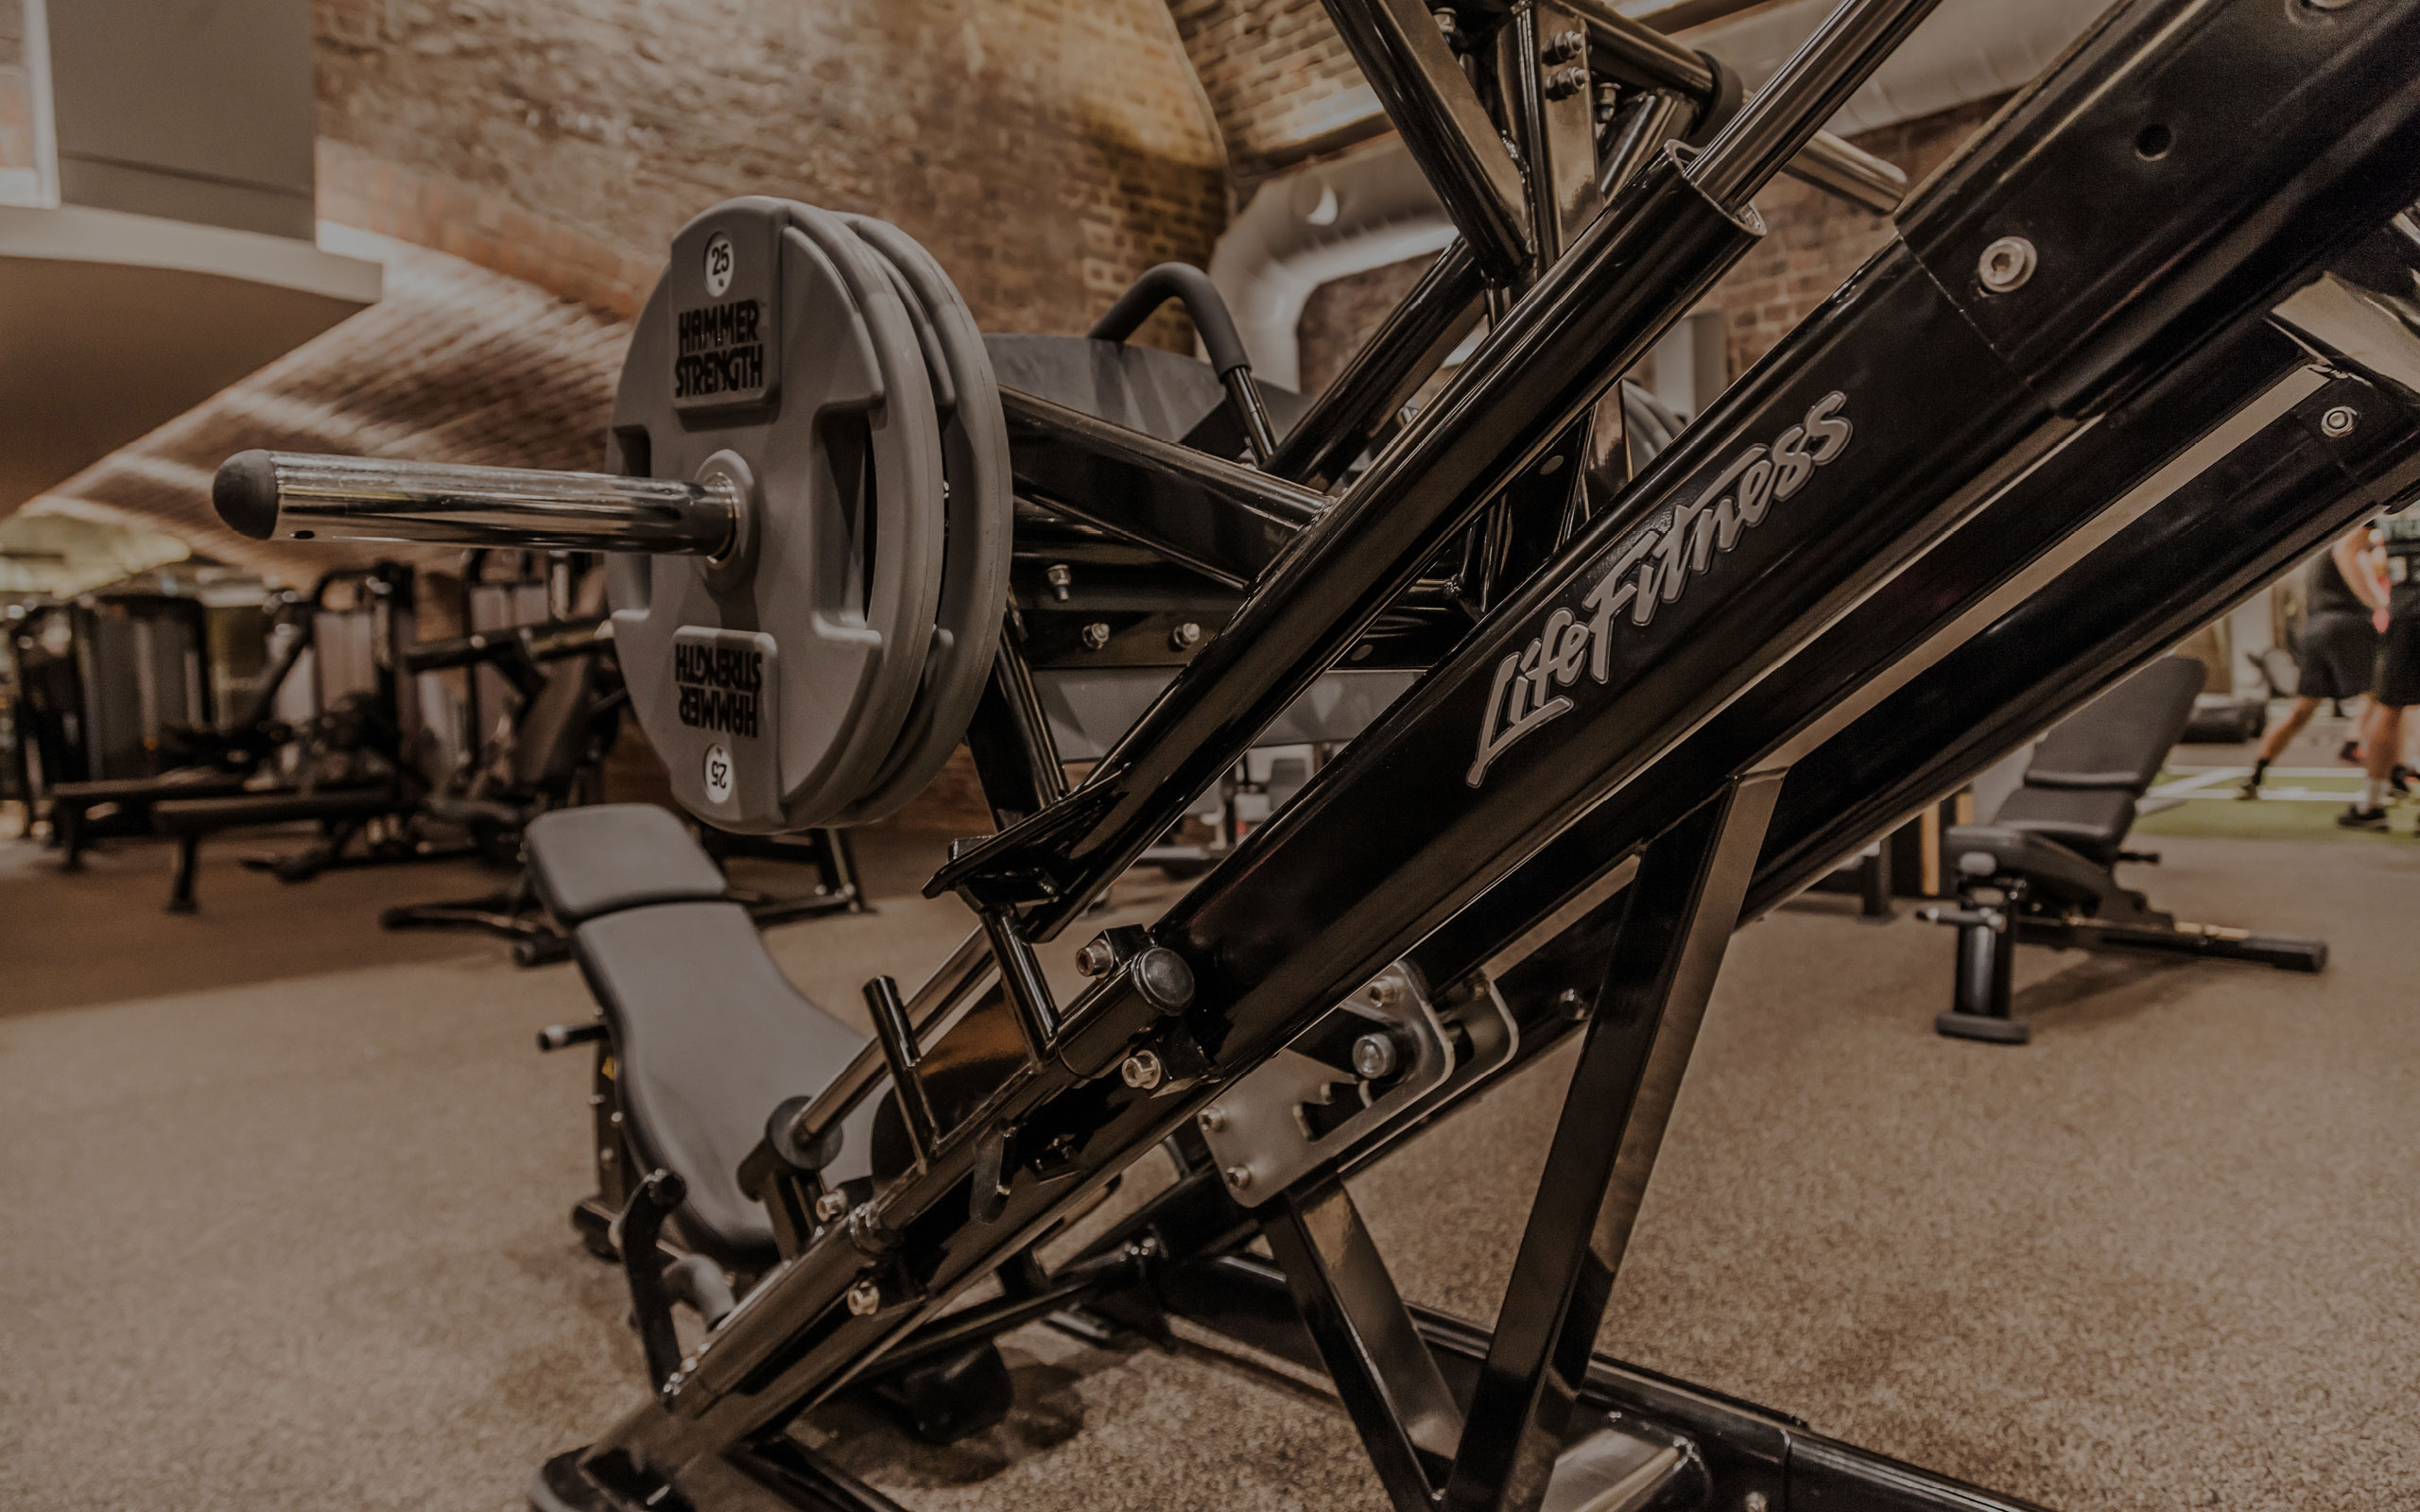 Creative, communications and digital support for Life Fitness